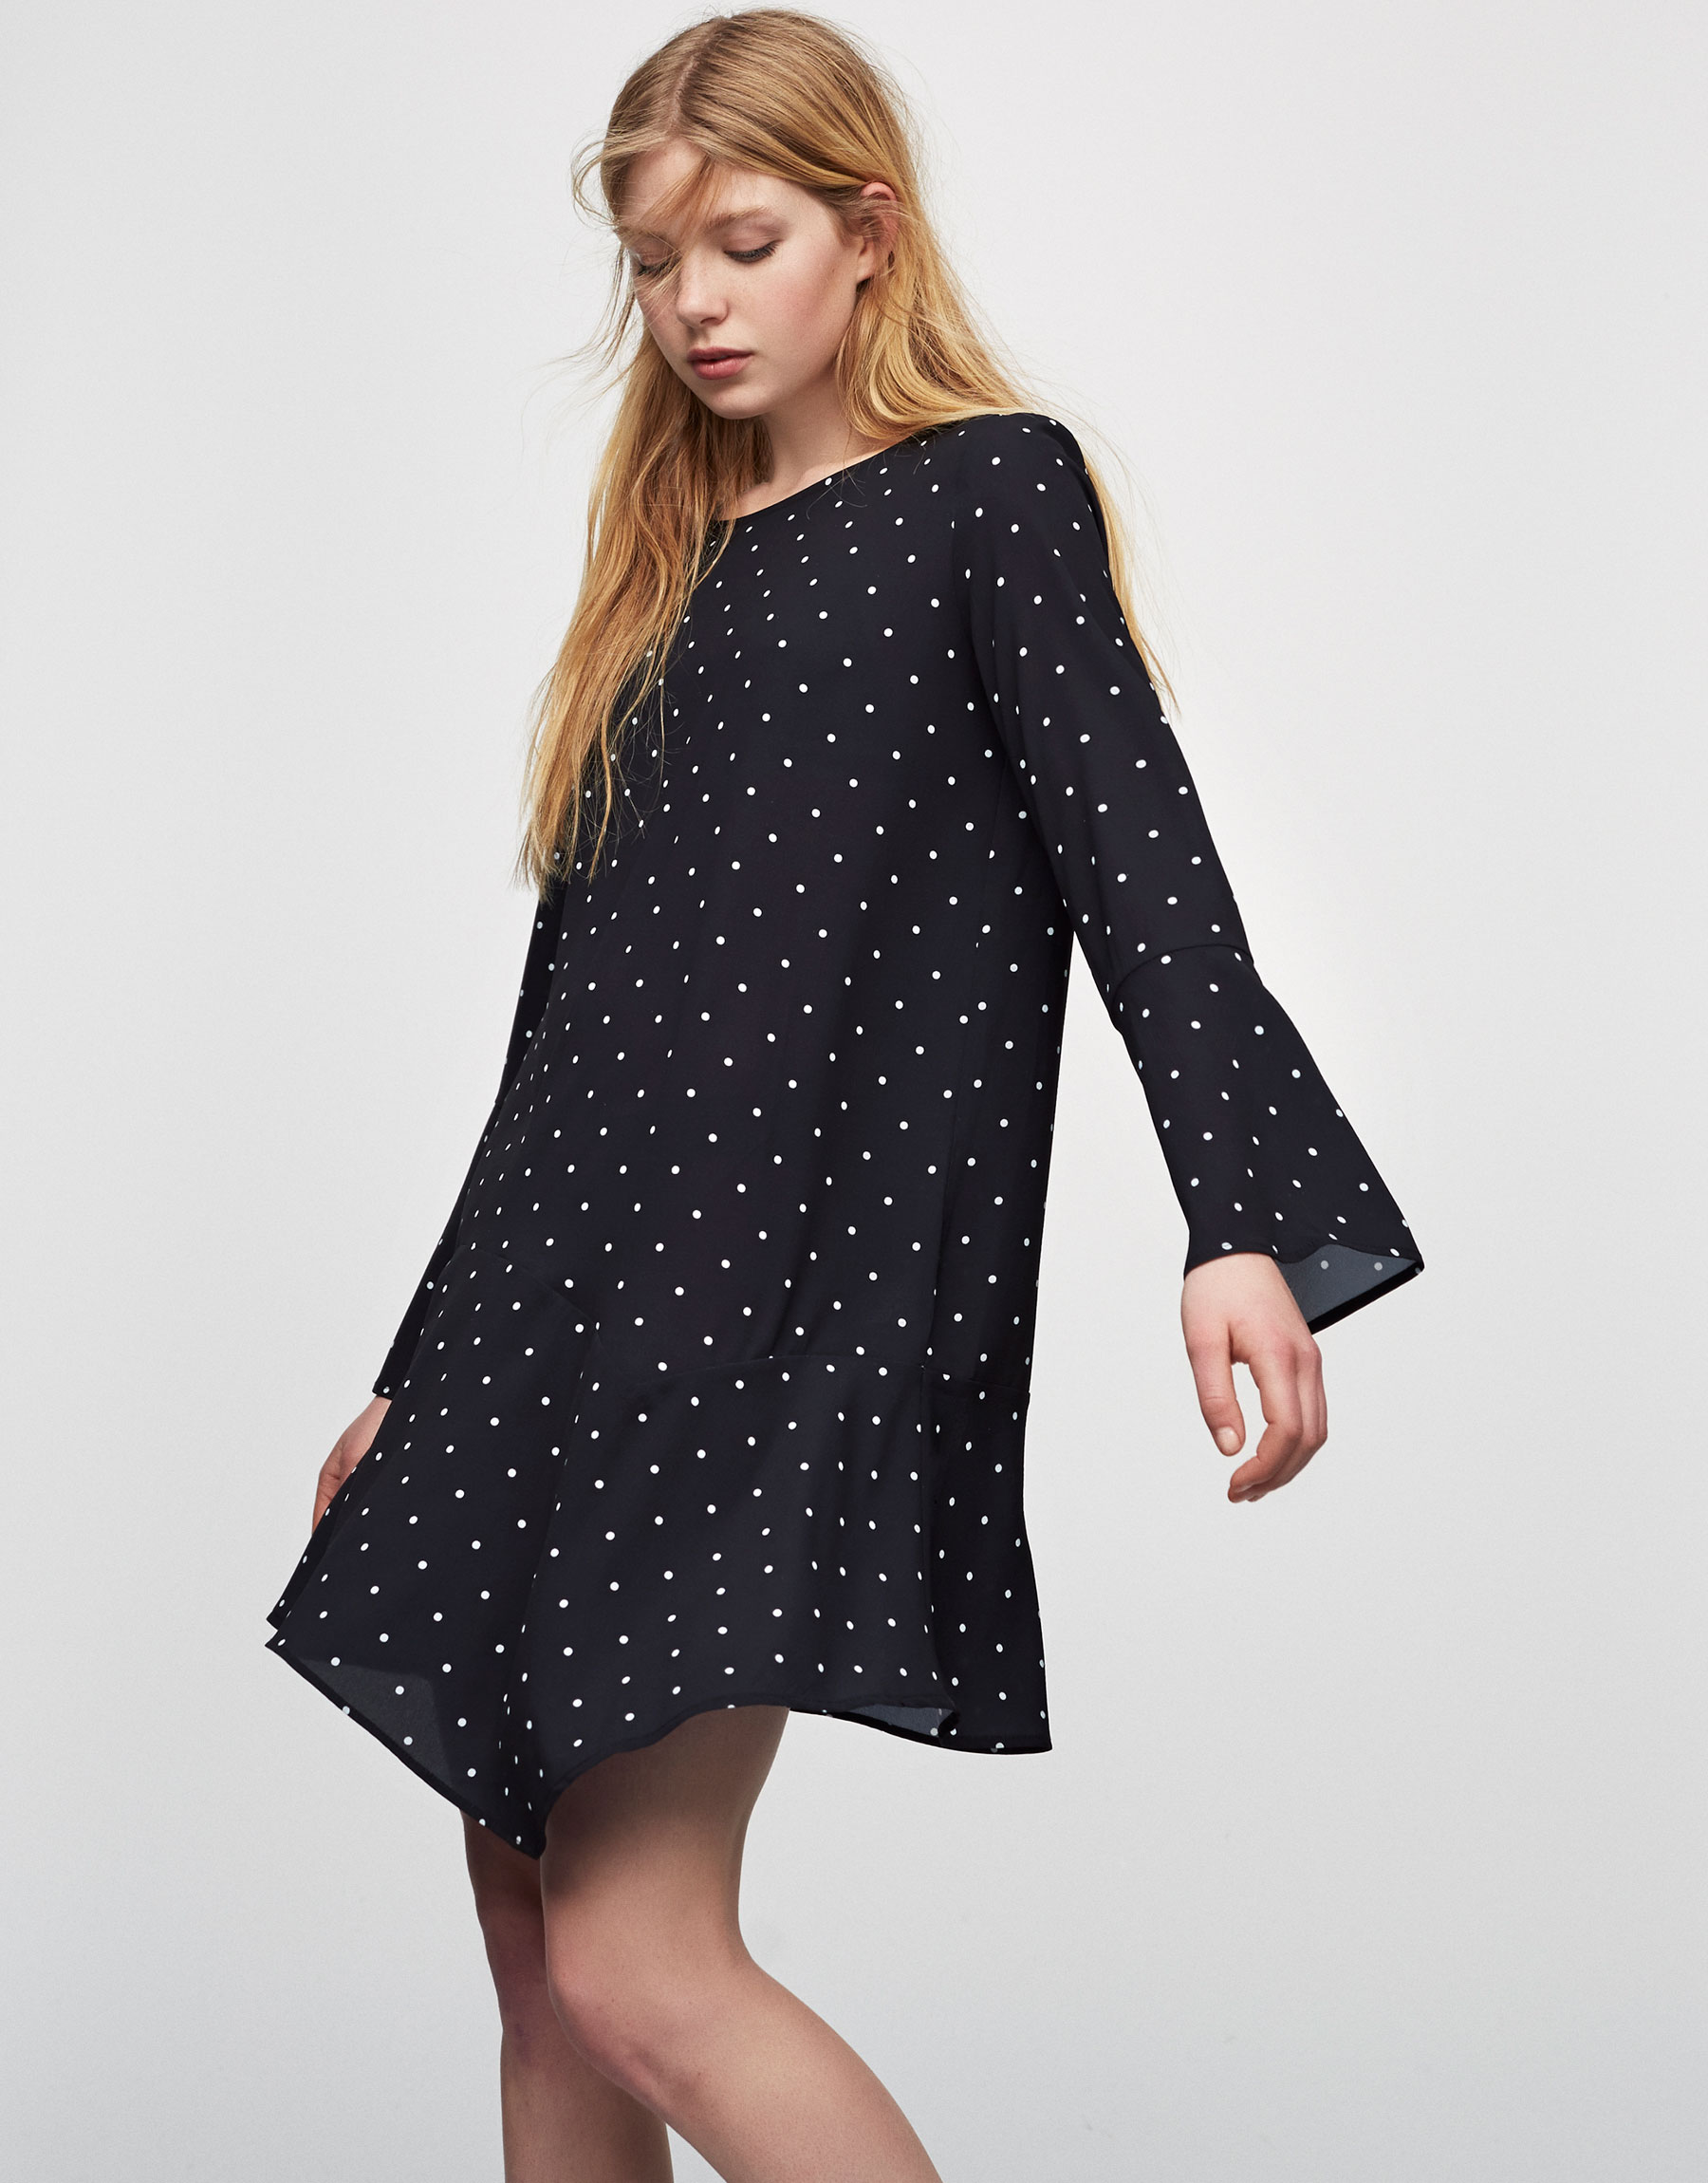 A-line dress with bell sleeves